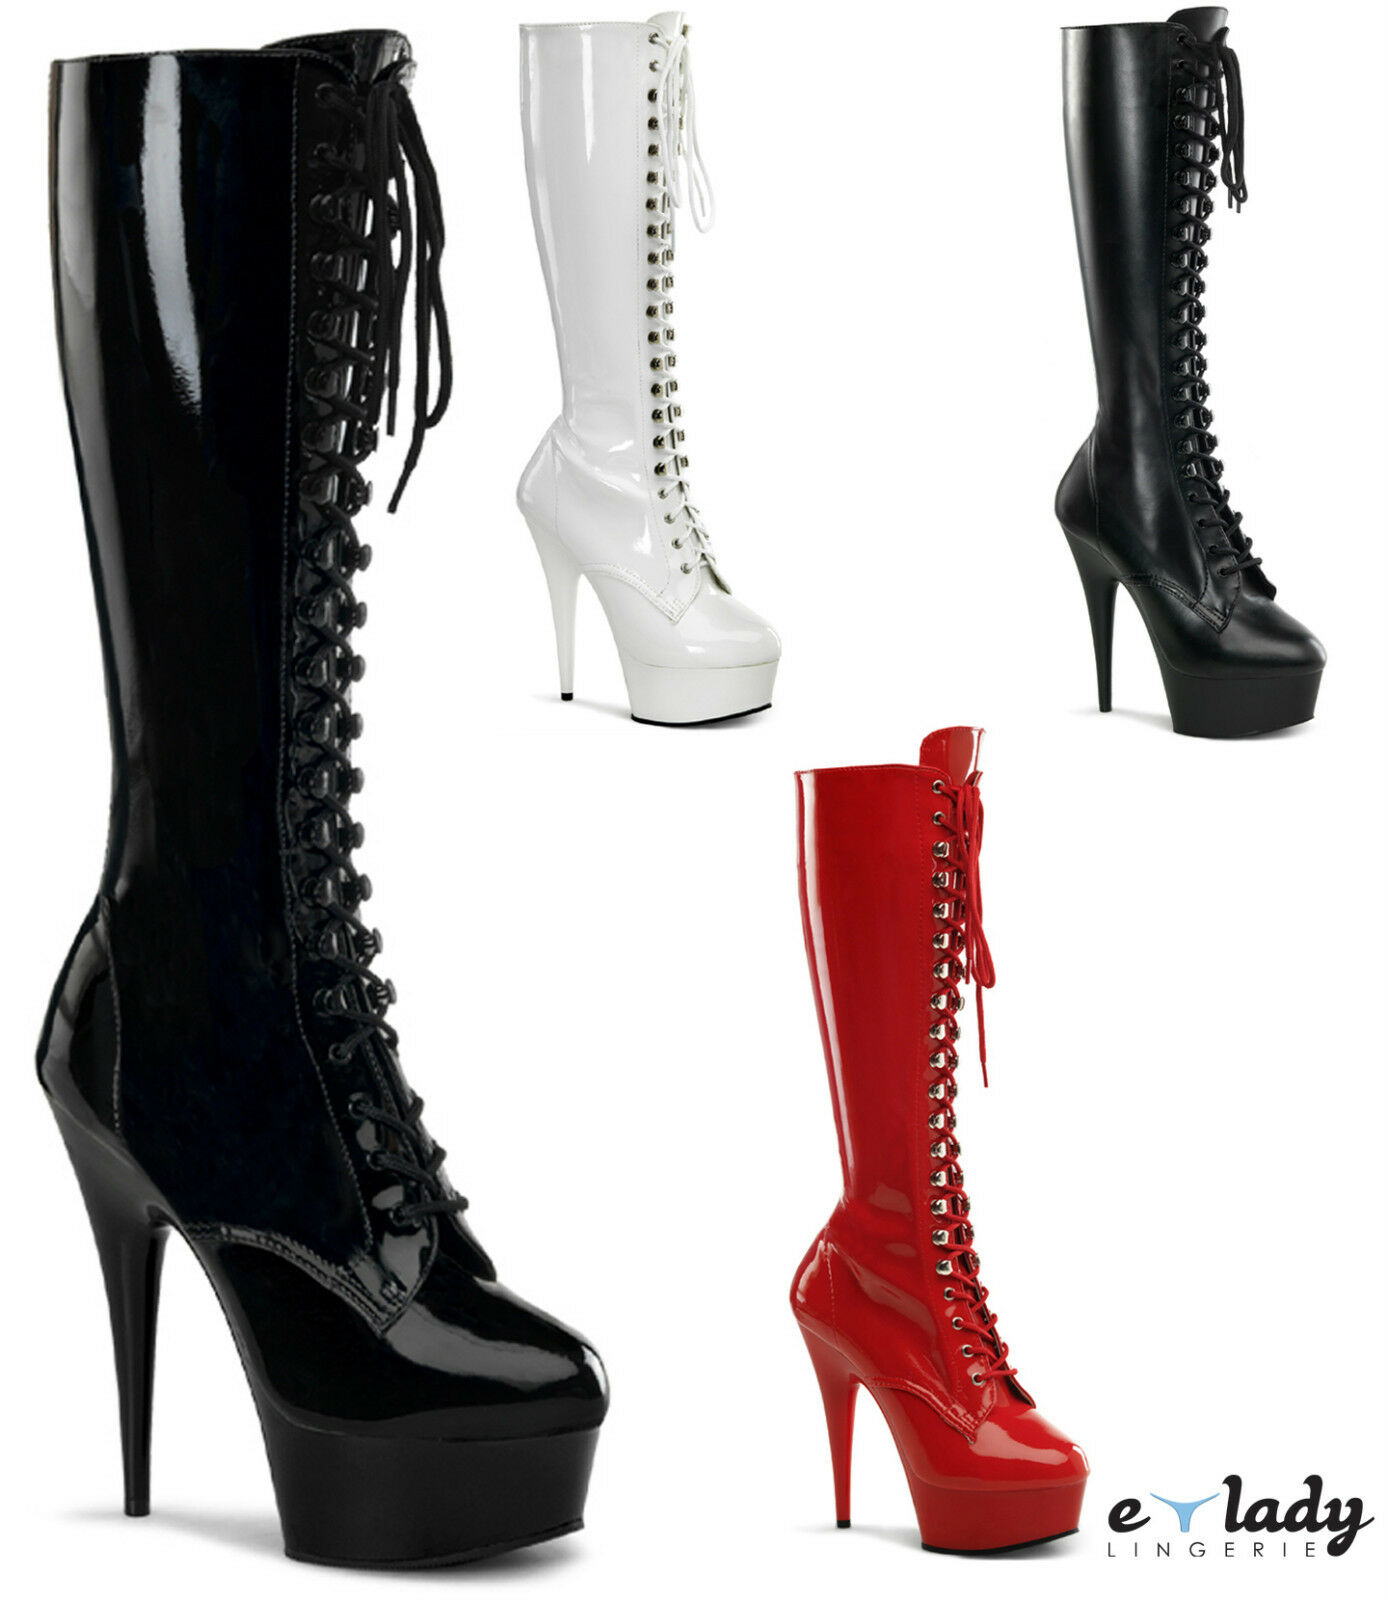 Pleaser Delight - 2023 la rodilla Botas altas Zapatos Taco aguja Zapatos Tacones Altos Plataformas Fancy Dress